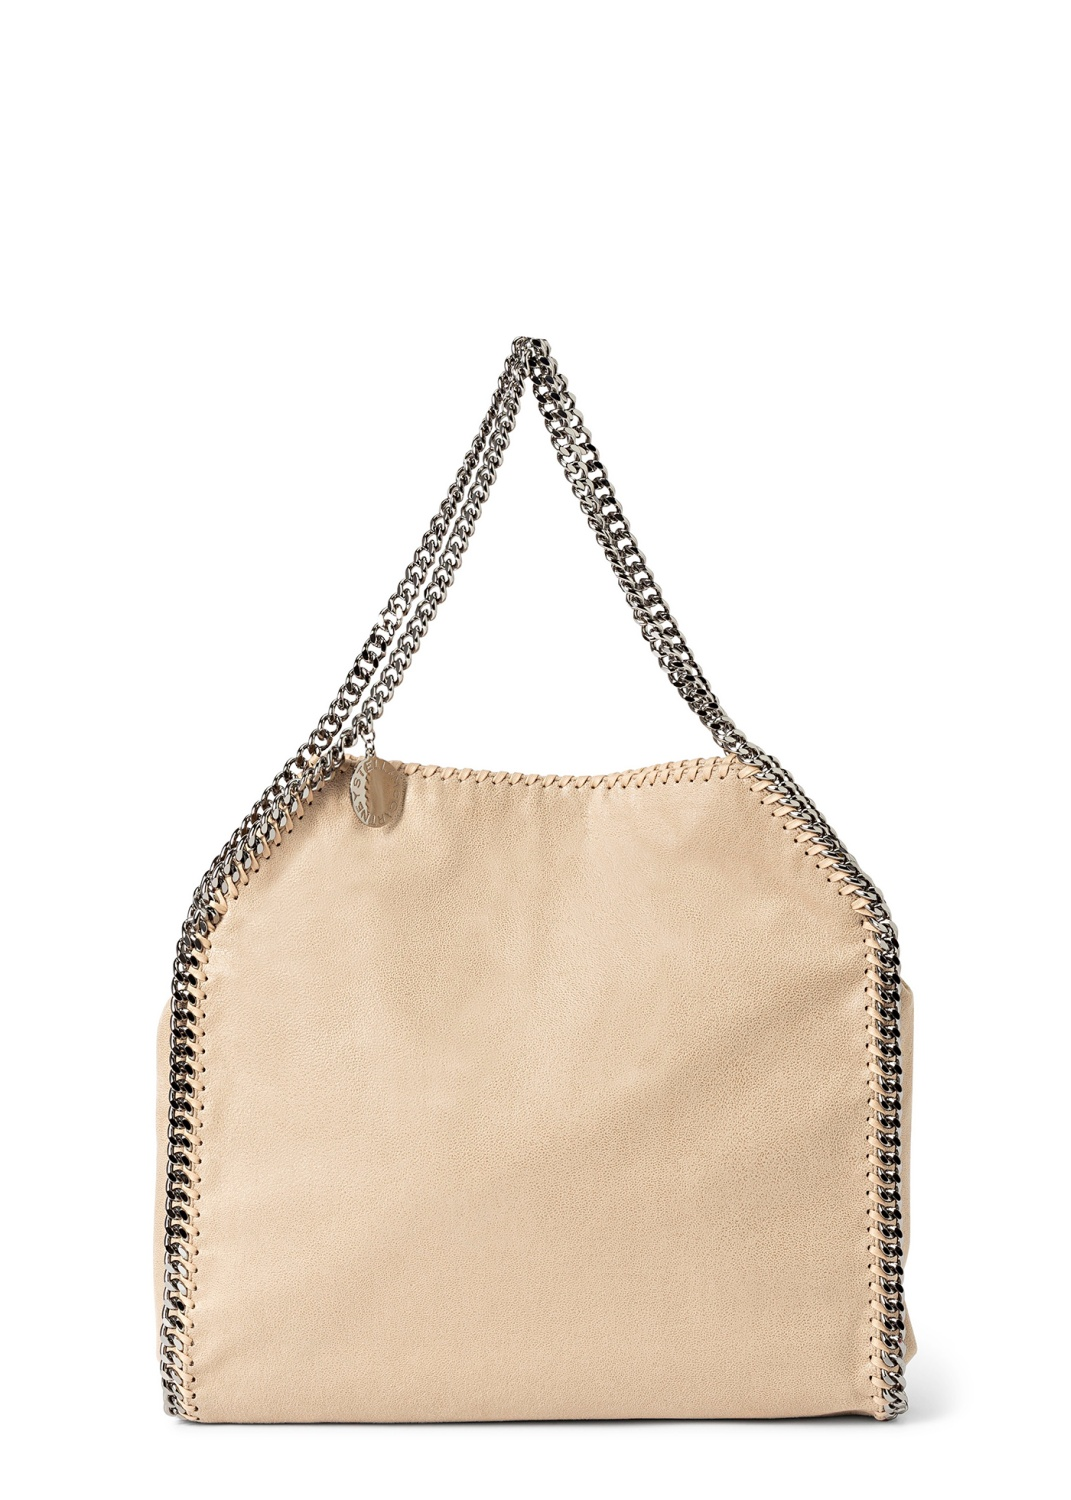 Falabella 2 Chain Hobo image number 0